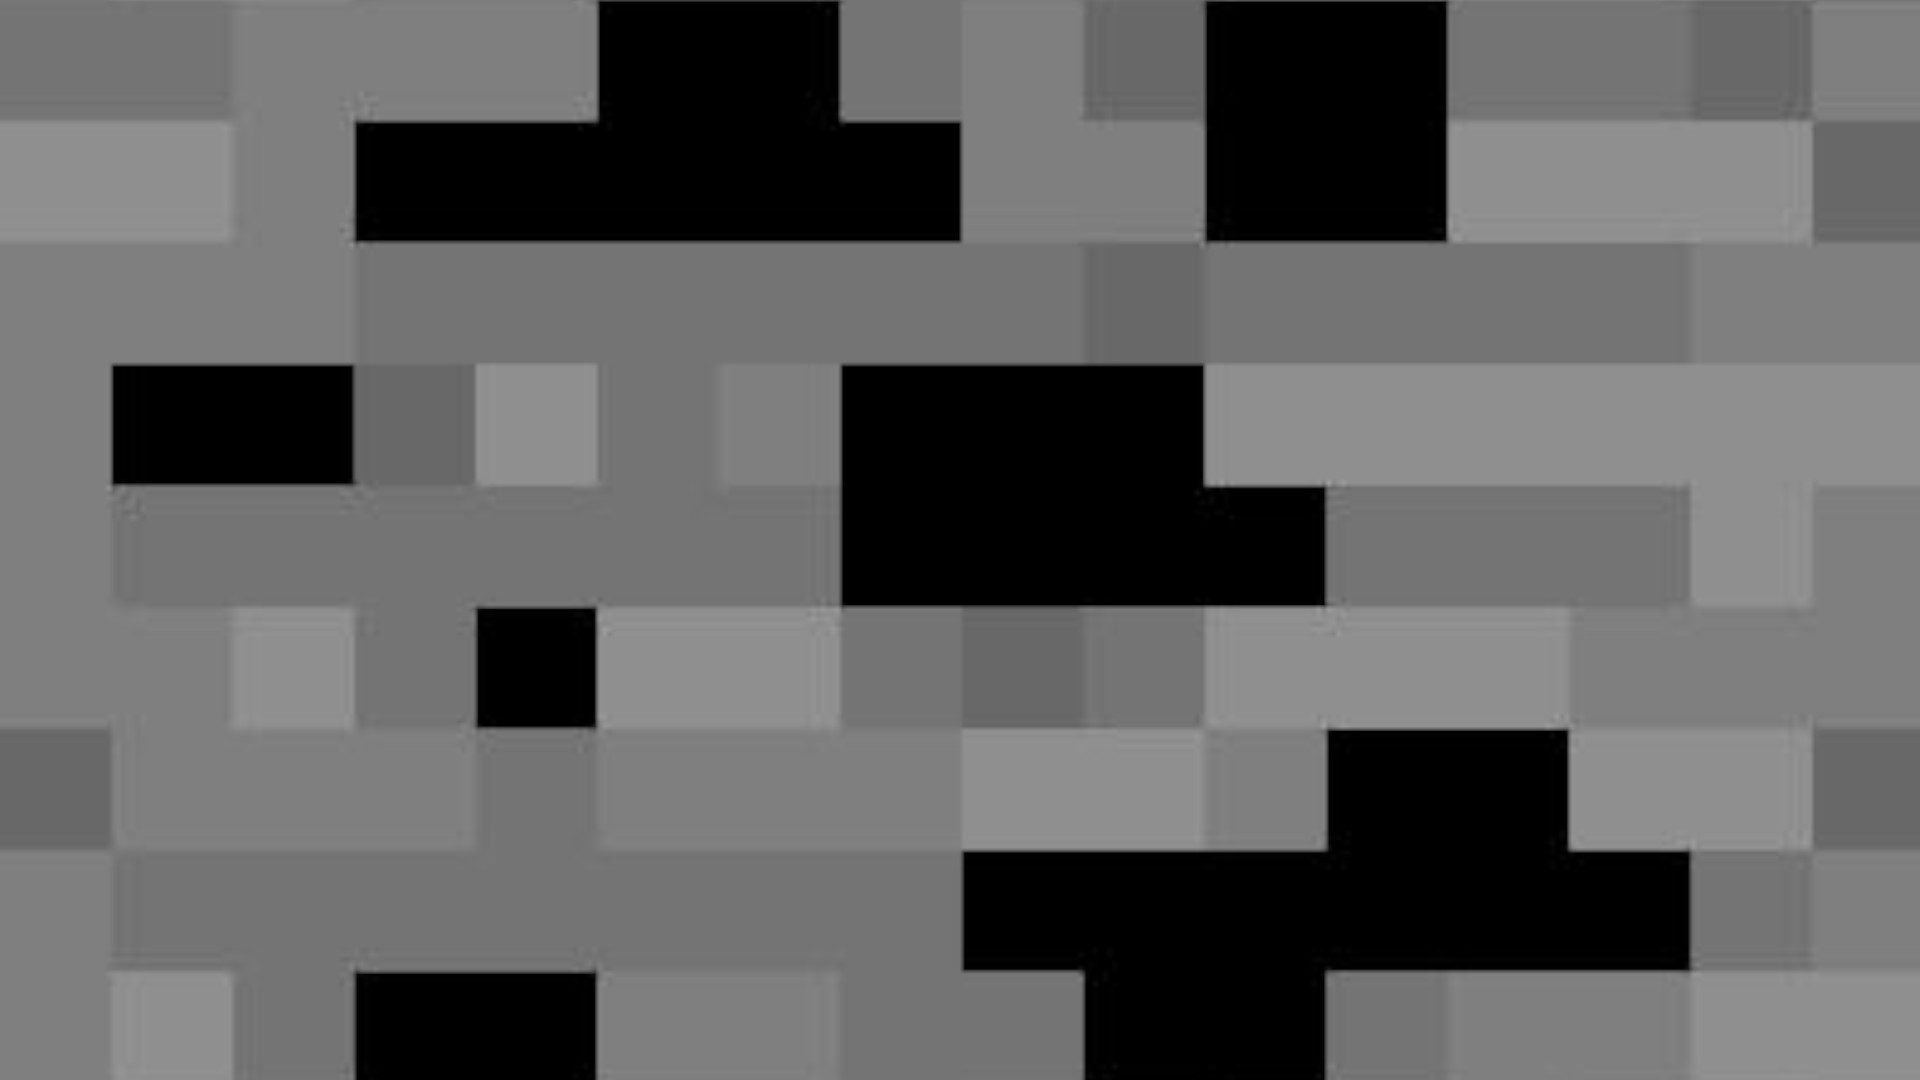 Minecraft's ore textures are changing